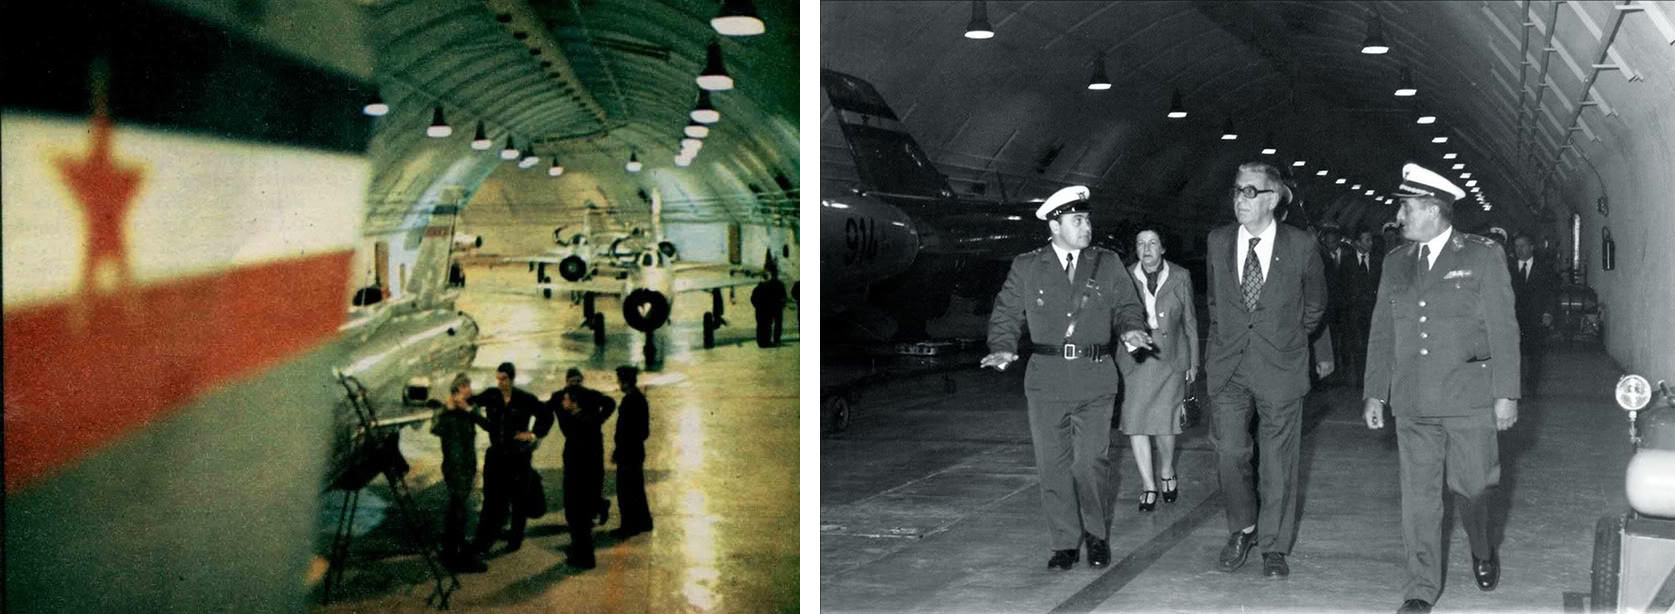 Left: The MiG-21bis aircraft of the 125th Fighter Aviation Squadron. Right: Jakov Blažević (president of the Executive Council of the People's Republic of Croatia) and Milka Planinc (who would later serve as prime minister of Yugoslavia from 1982-1986) on a visit to Željava in the 1970s.